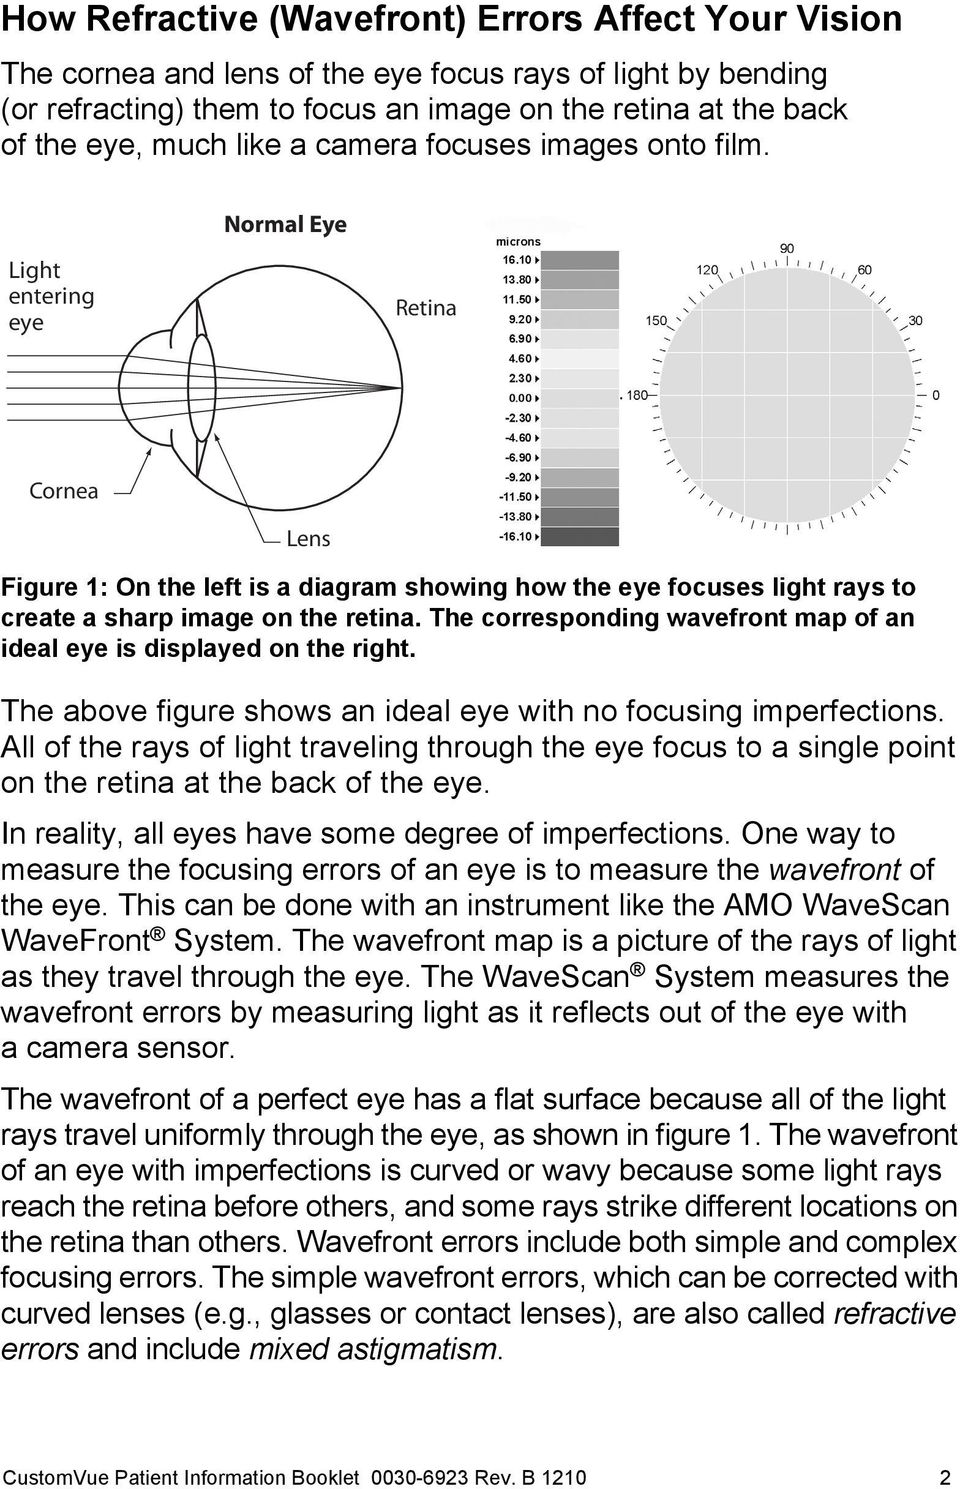 Normal Eye Light entering eye Retina Cornea Lens Figure 1: On the left is a diagram showing how the eye focuses light rays to create a sharp image on the retina.